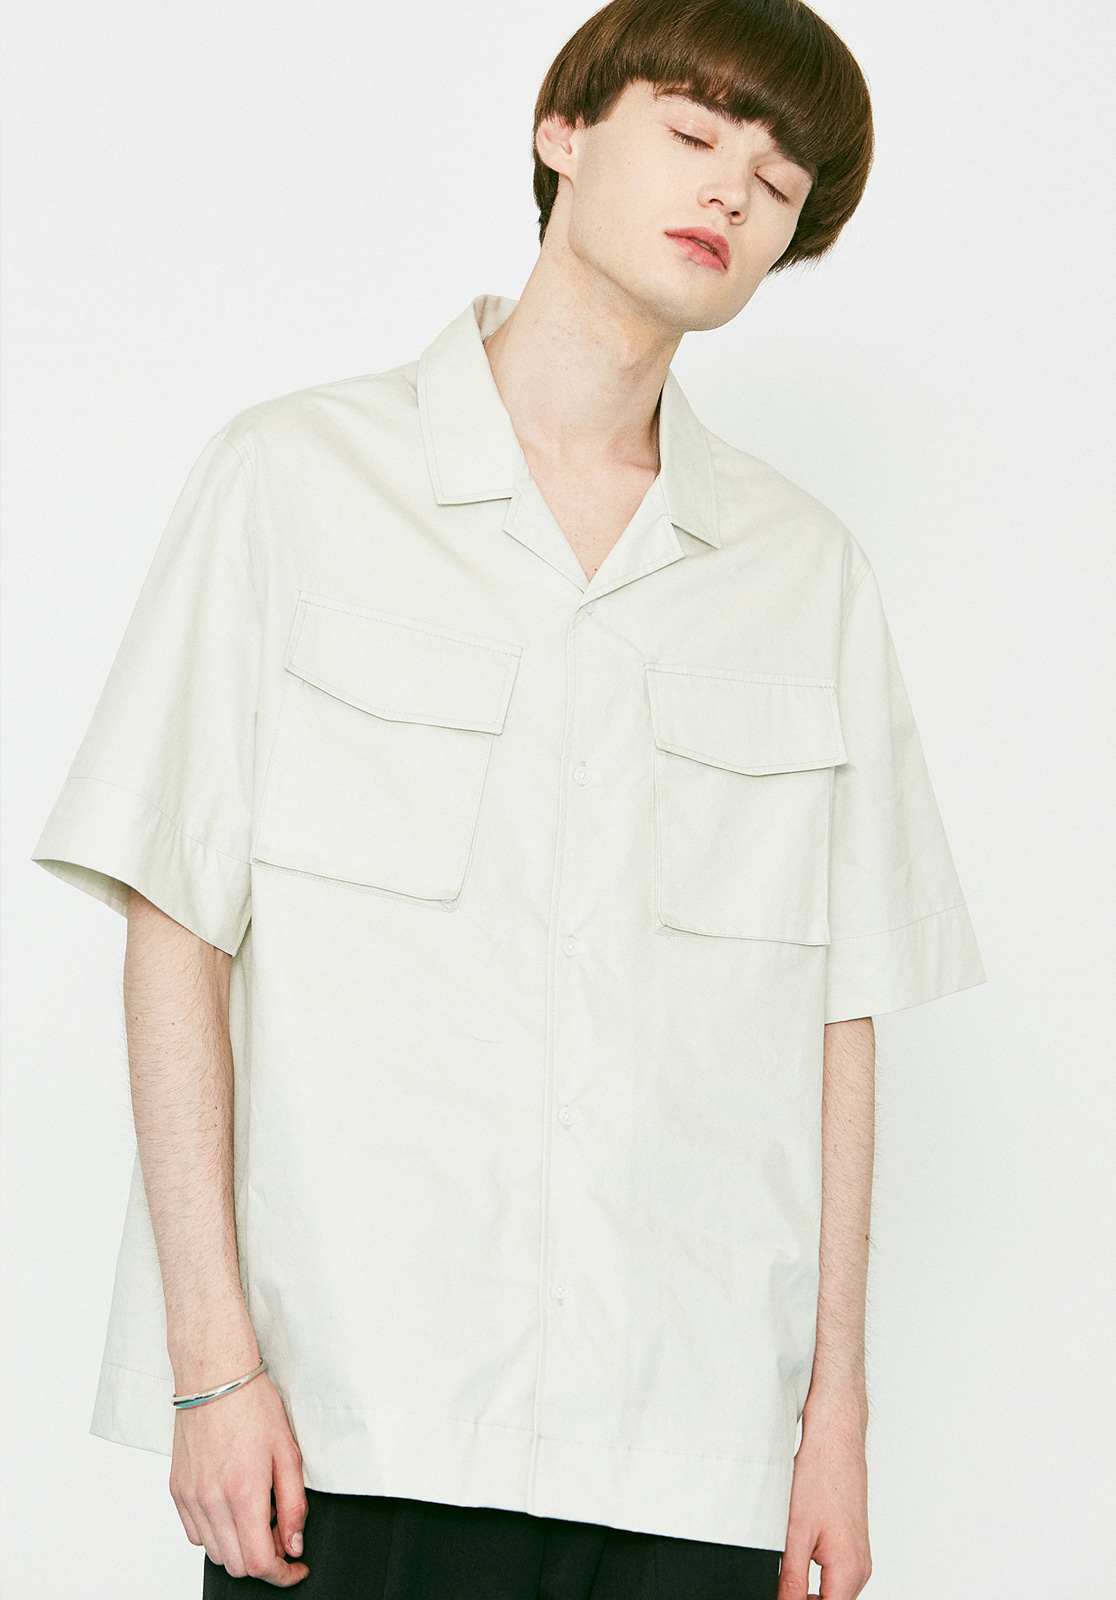 V456 TWO POCKET HALF-SHIRTS LIGHT GRAY